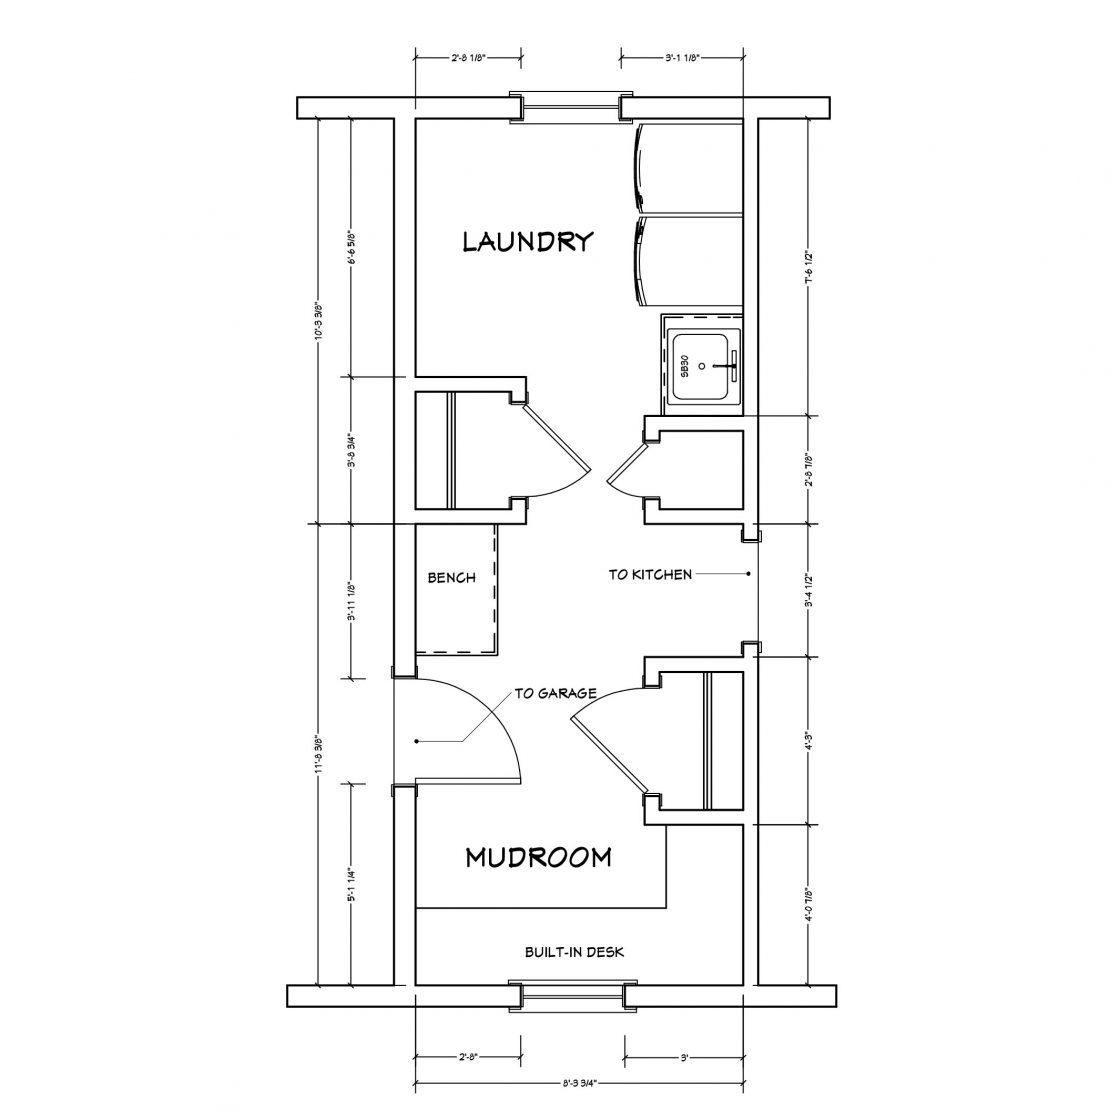 Mudroom And Laundry Room Before Plan Mudroom Floor Plan Laundry Room Flooring Laundry Room Layouts